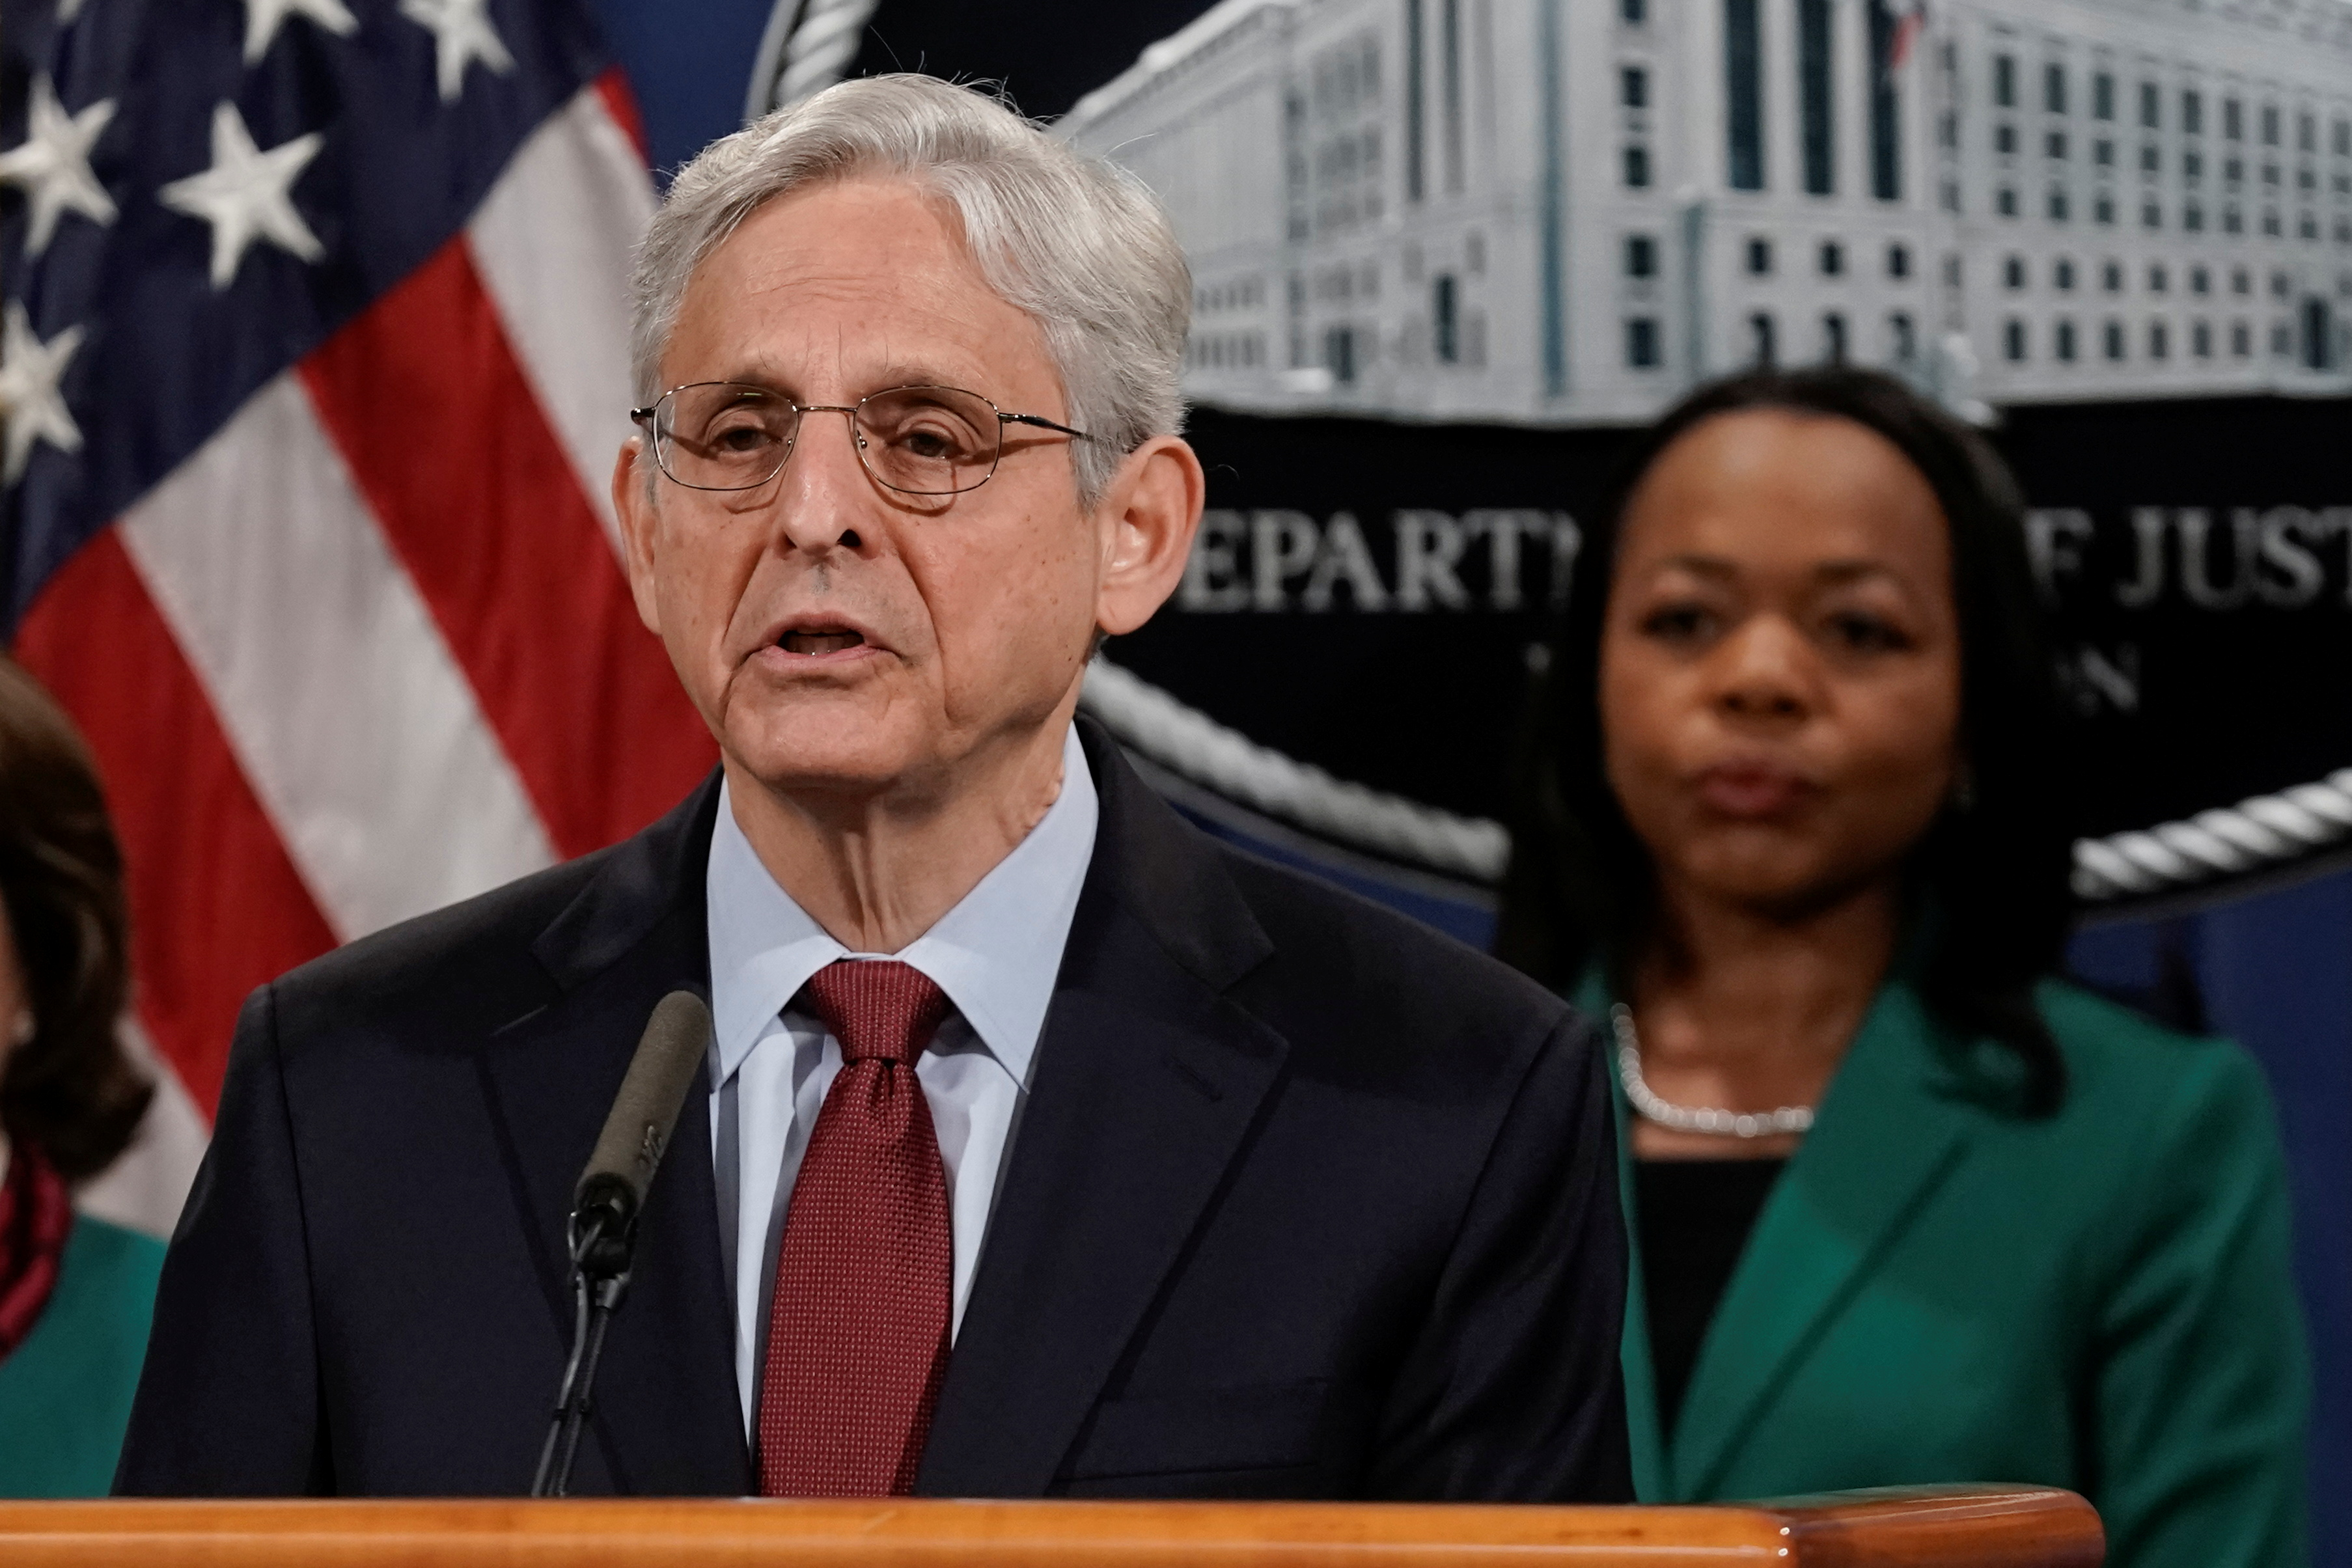 U.S. Attorney General Merrick Garland speaks accompanied by Assistant Attorney General for Civil Rights Kristen Clarke during a news conference to announce